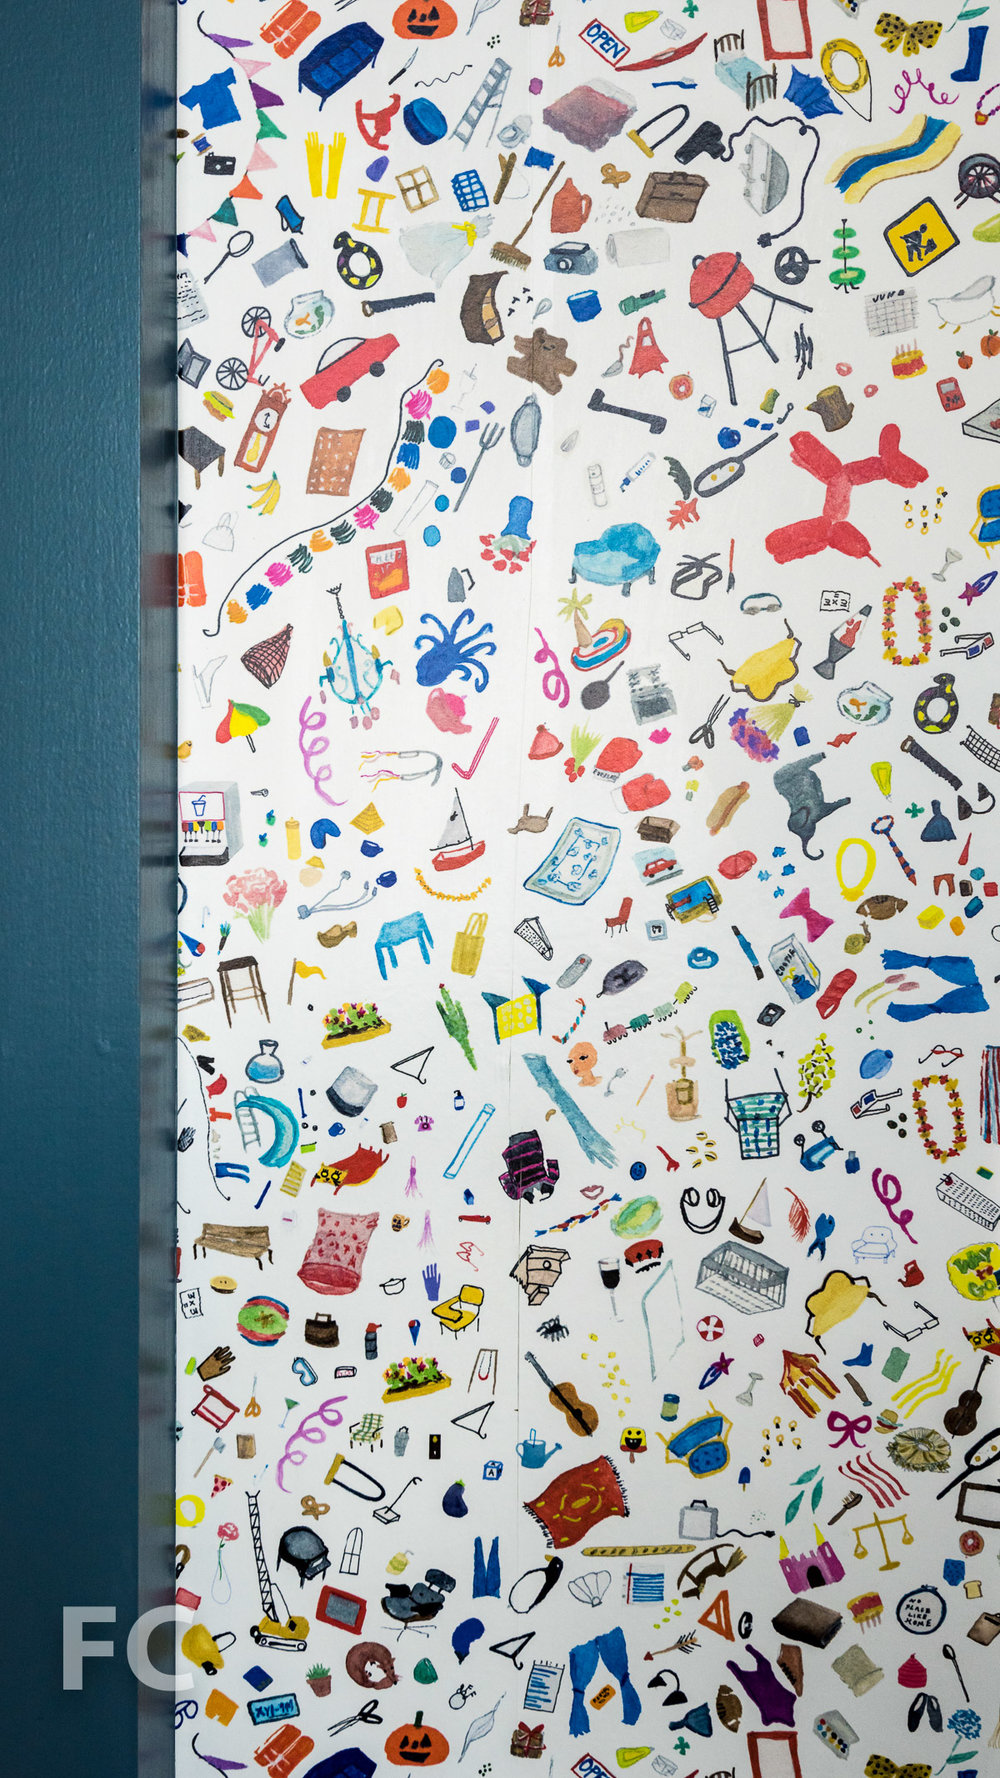 Detail of play room wallpaper.